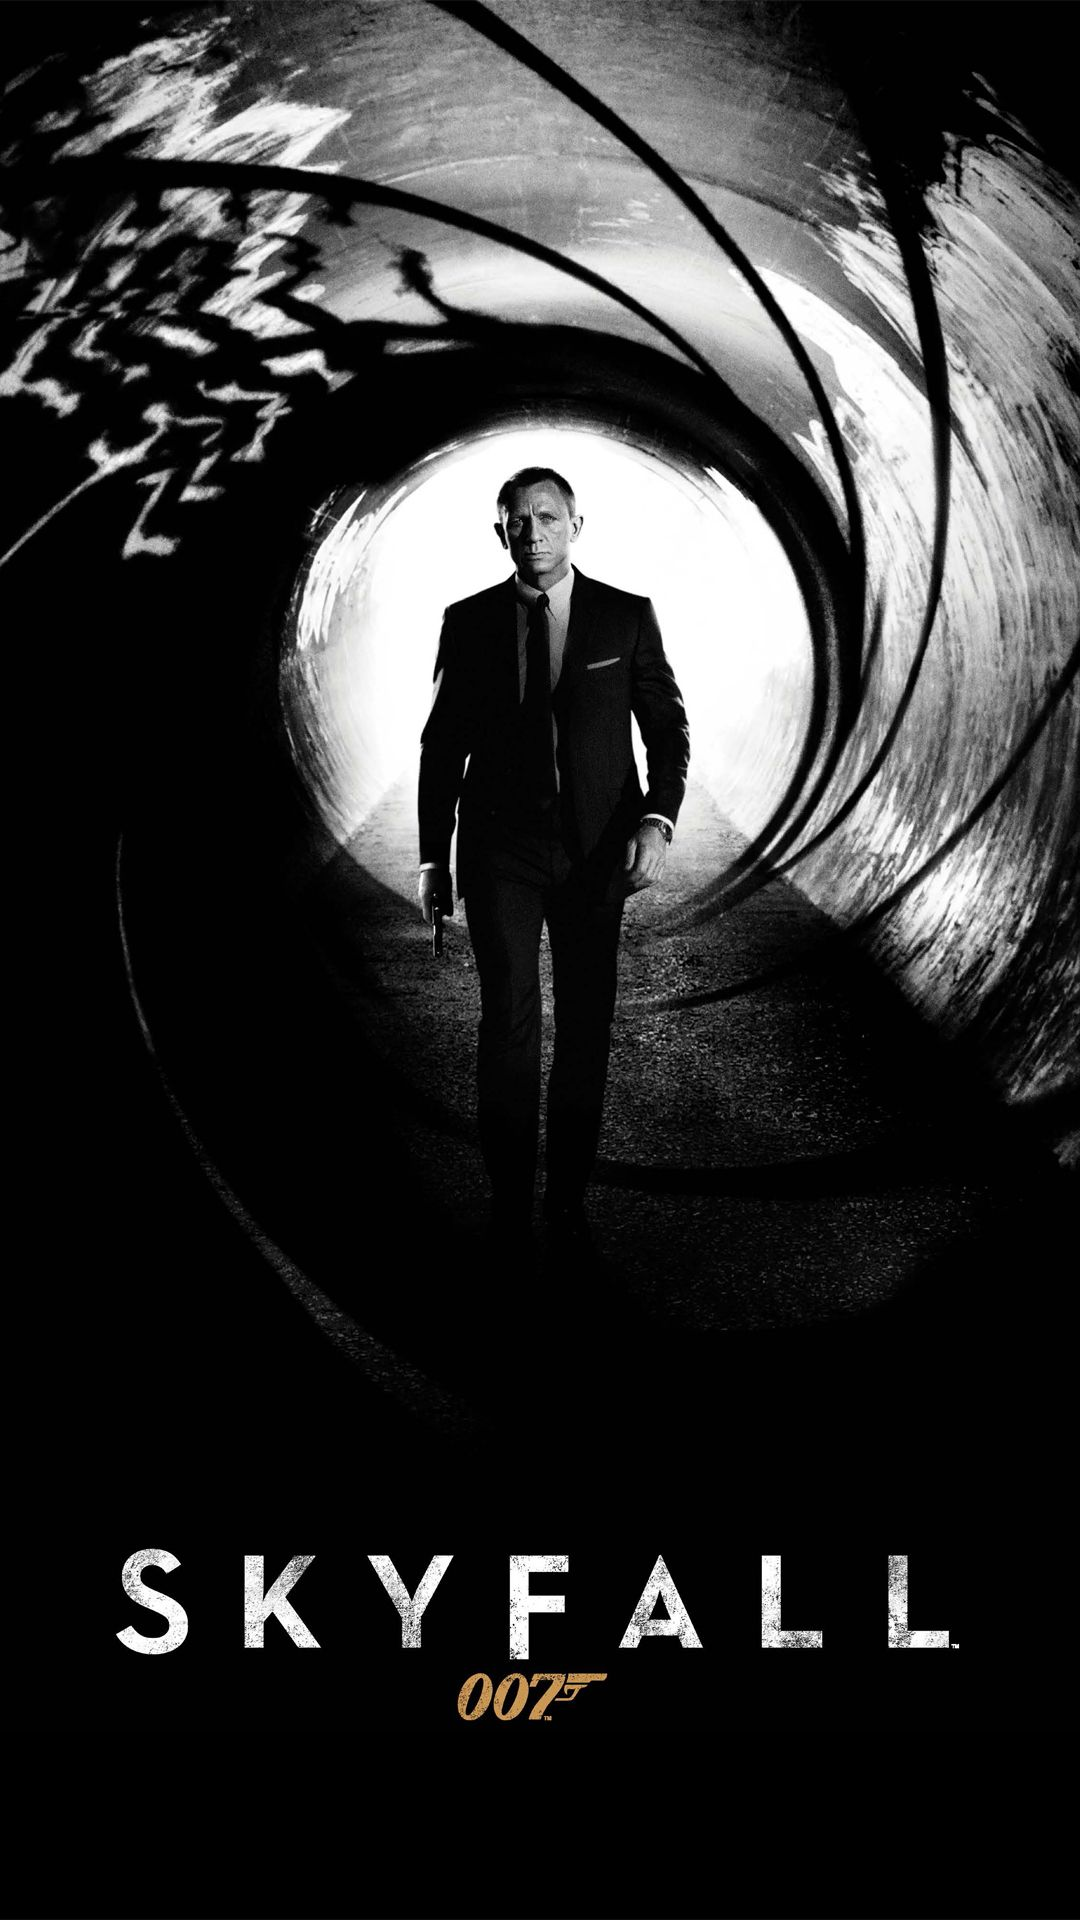 Skyfall james bond daniel craig iphone 6 plus hd wallpaper - James bond images hd ...